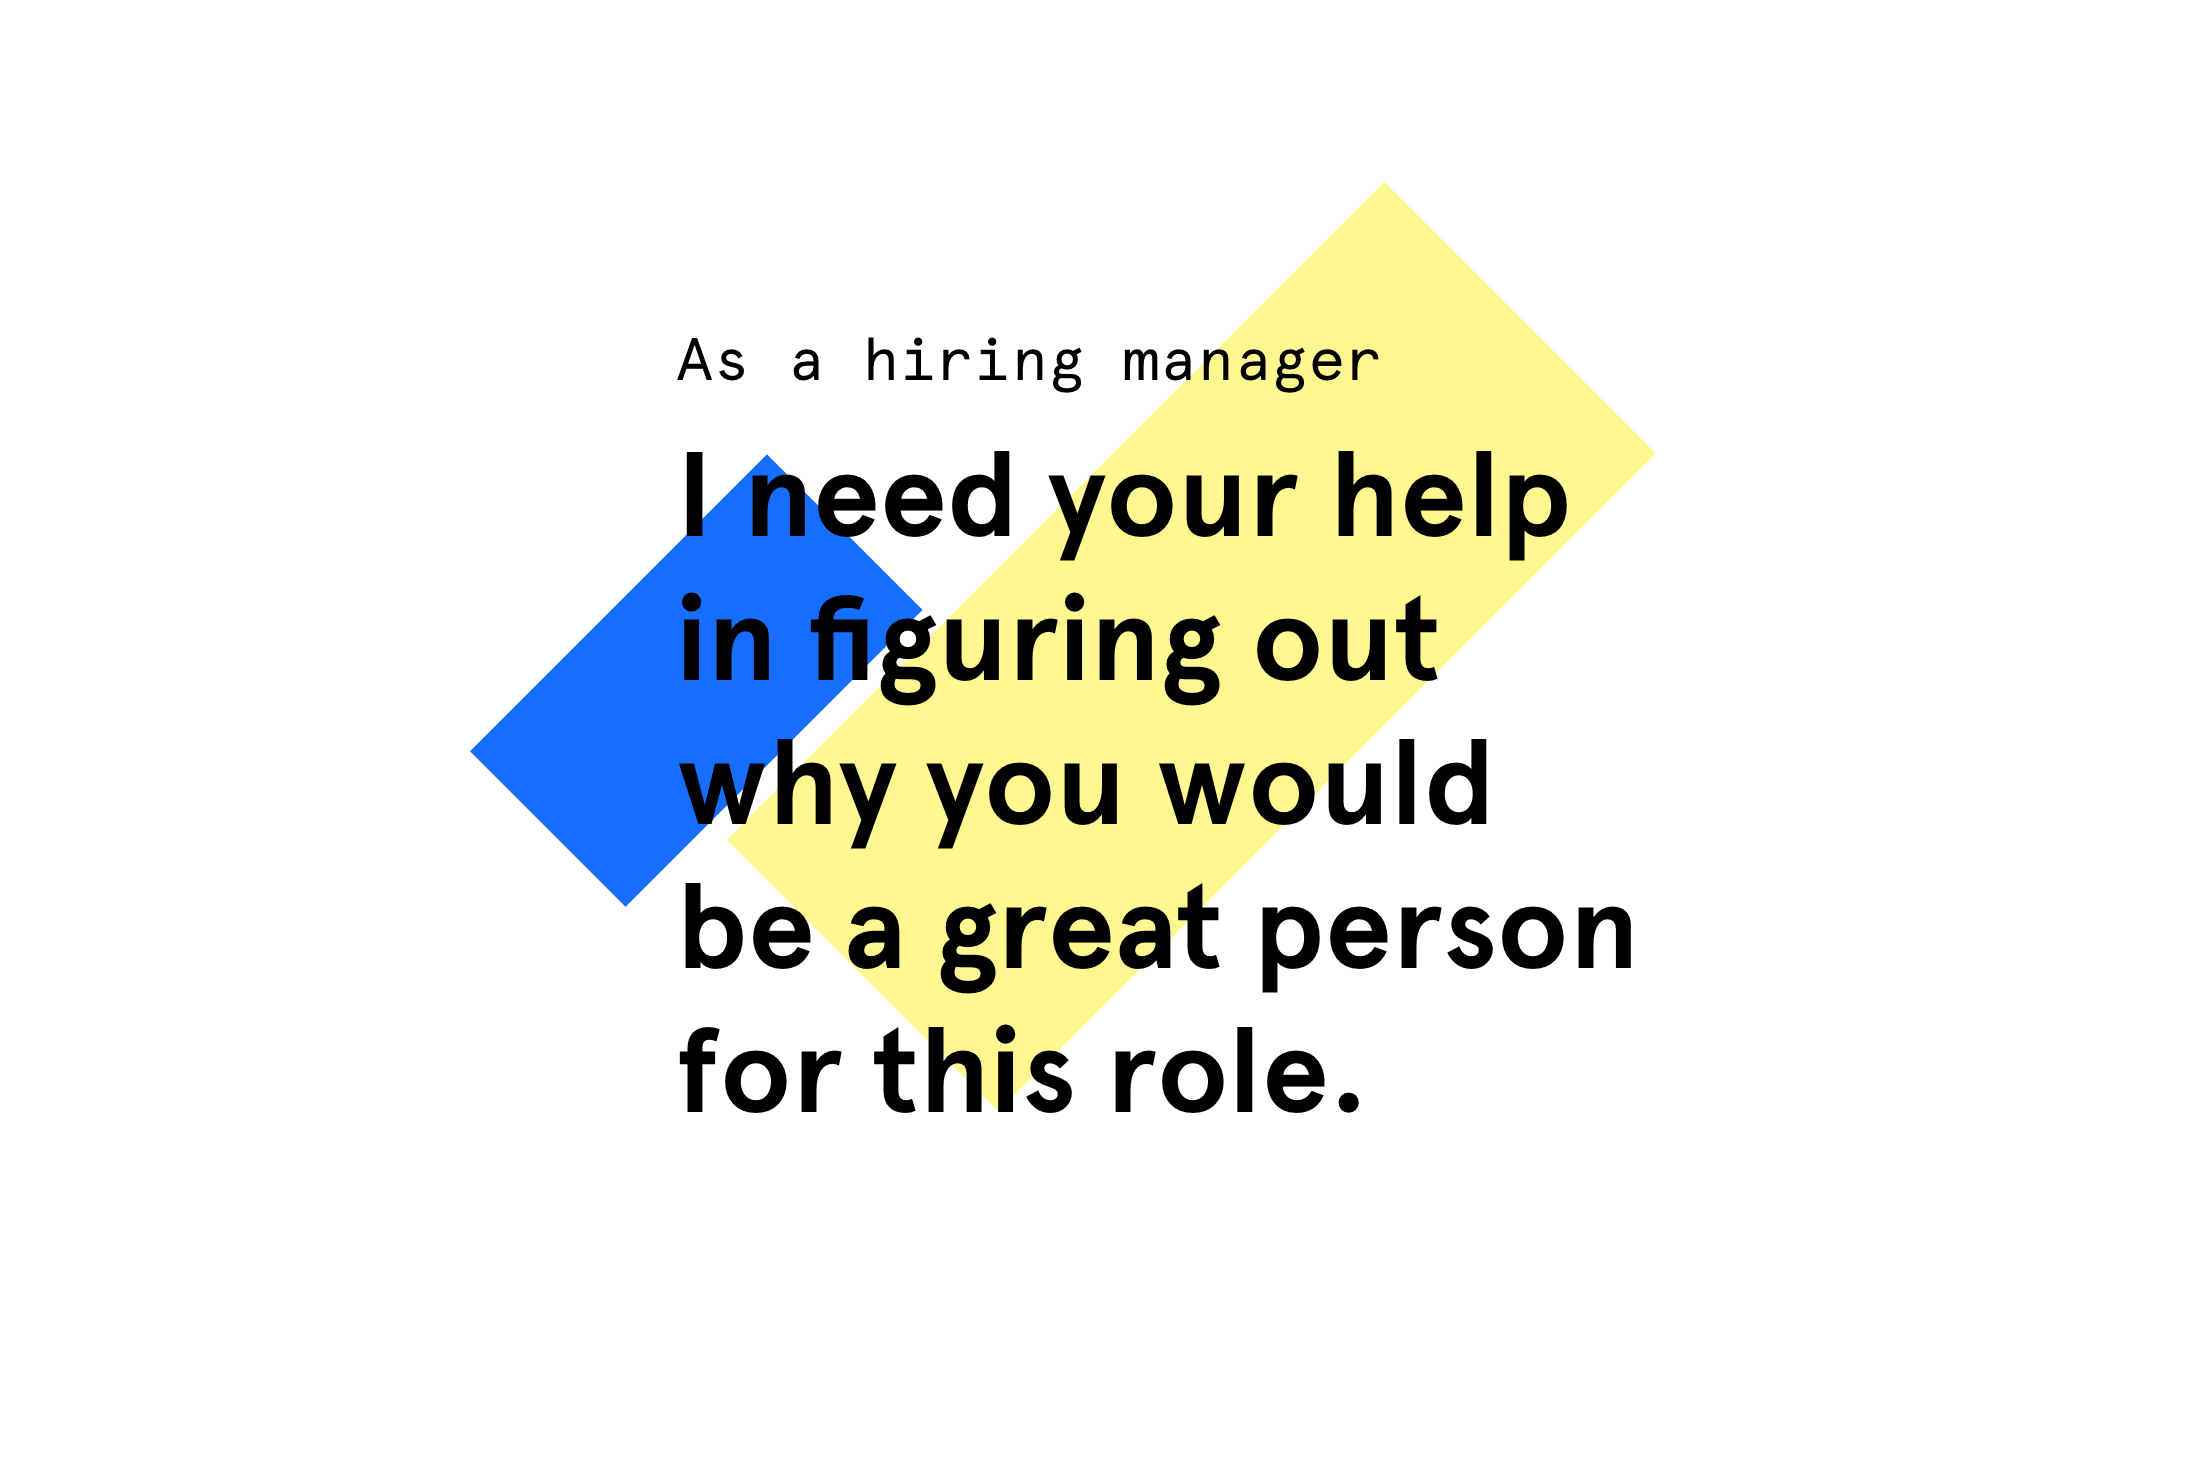 As a hiring manager I need your help in figuring out why you would be a great person for this role.